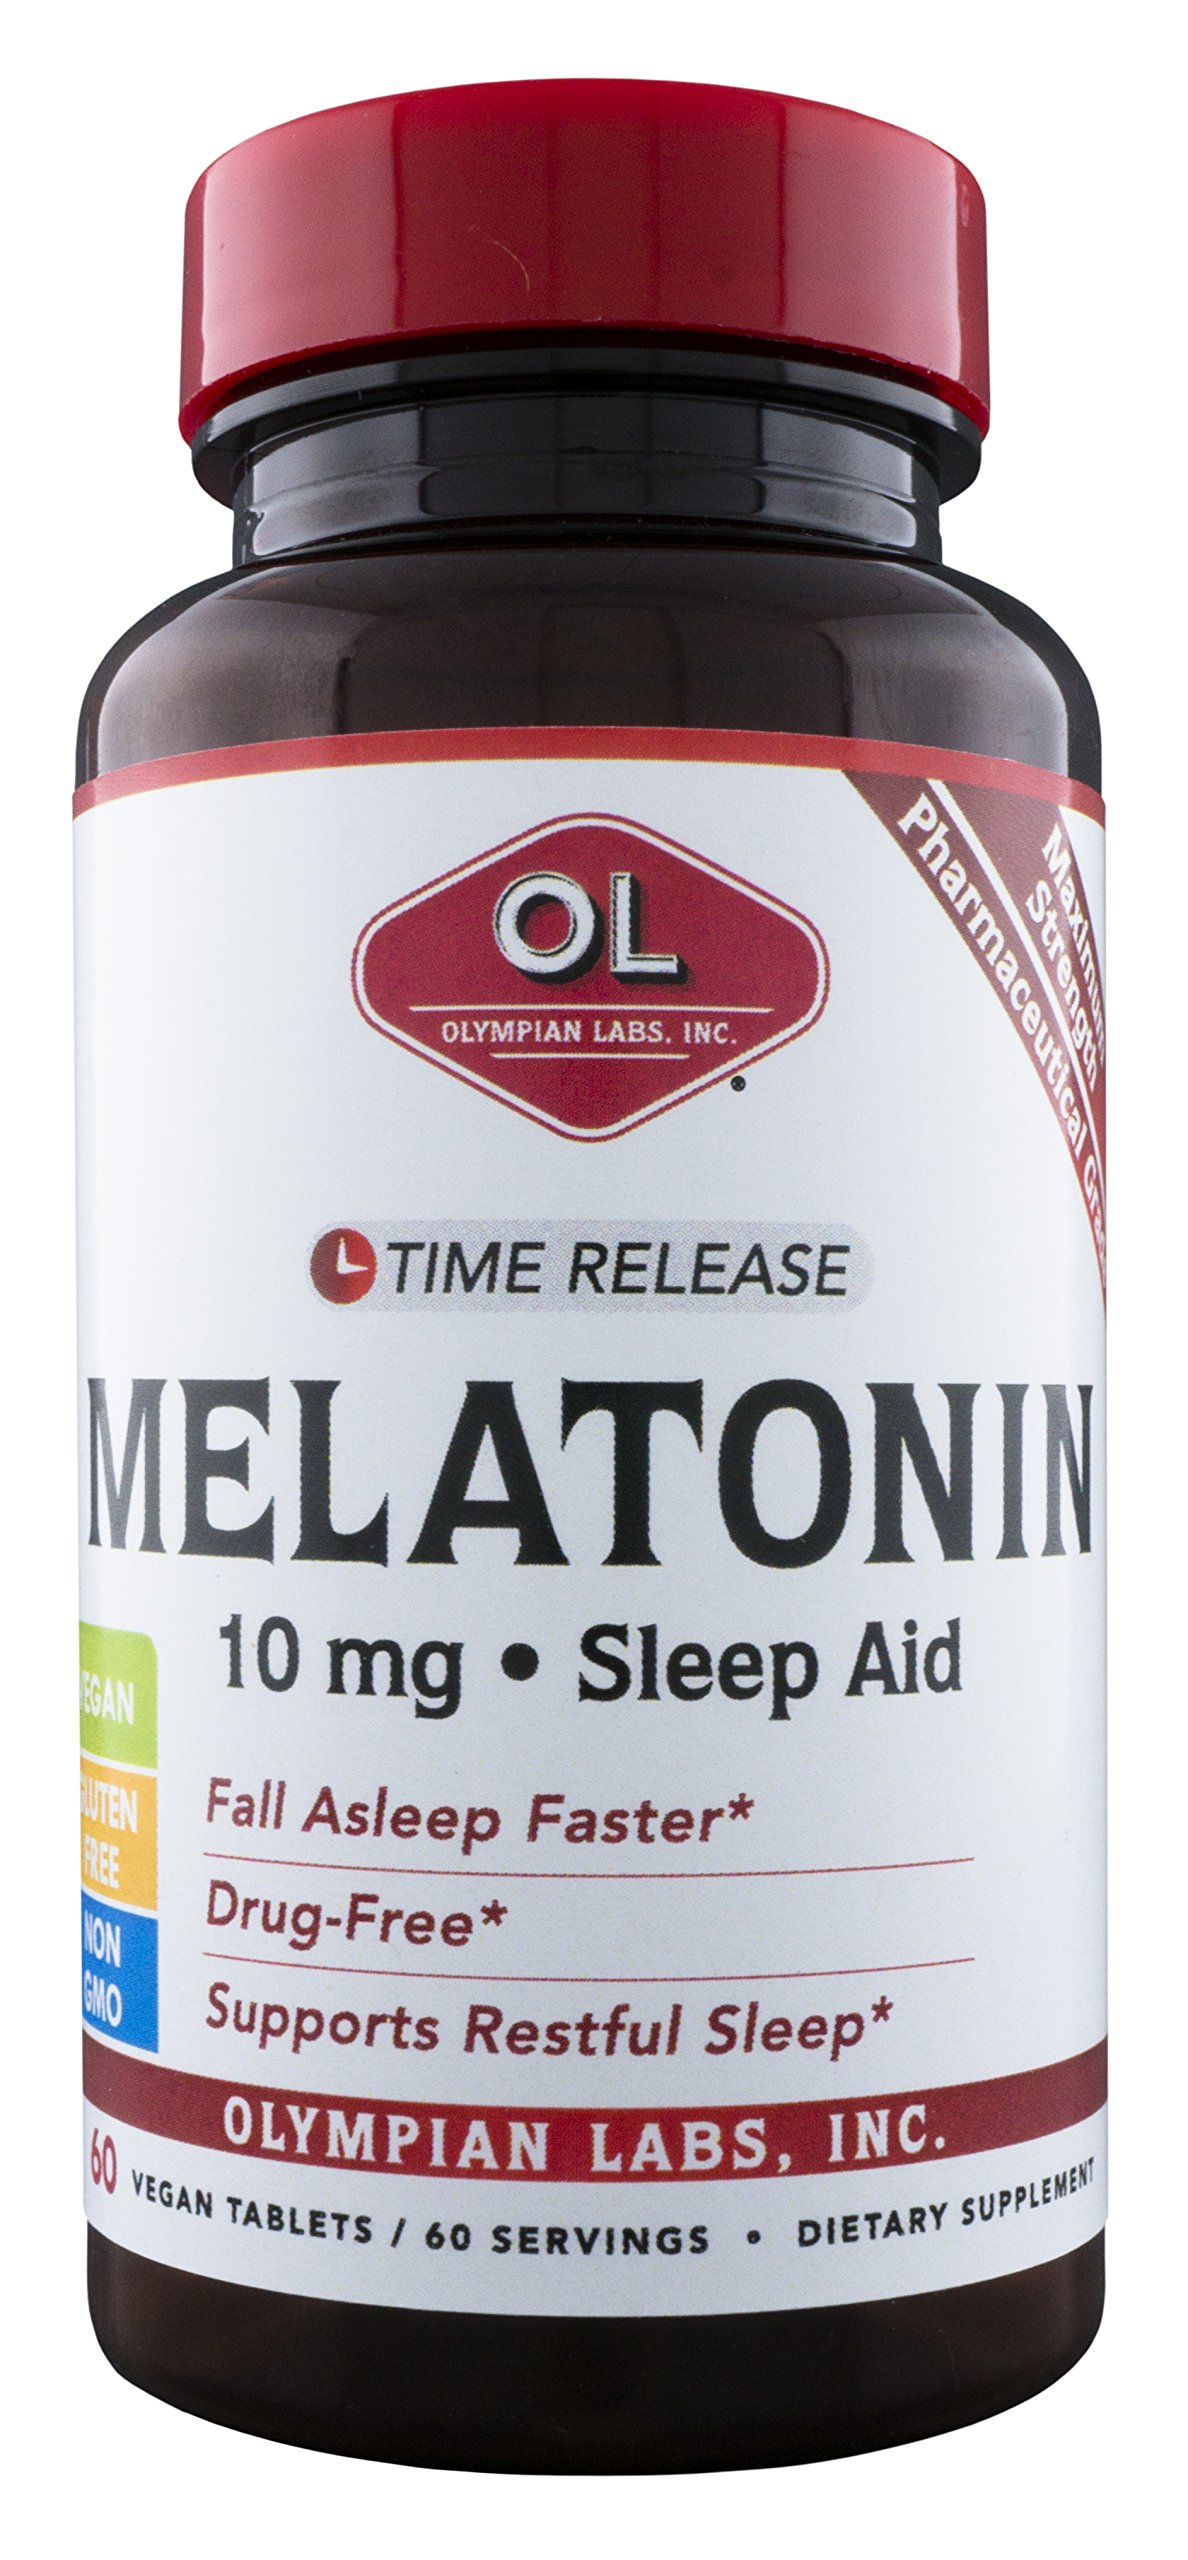 Amazon.com: Olympian Labs Melatonin 10 mg Time Release, 60 Count: Health & Personal Care